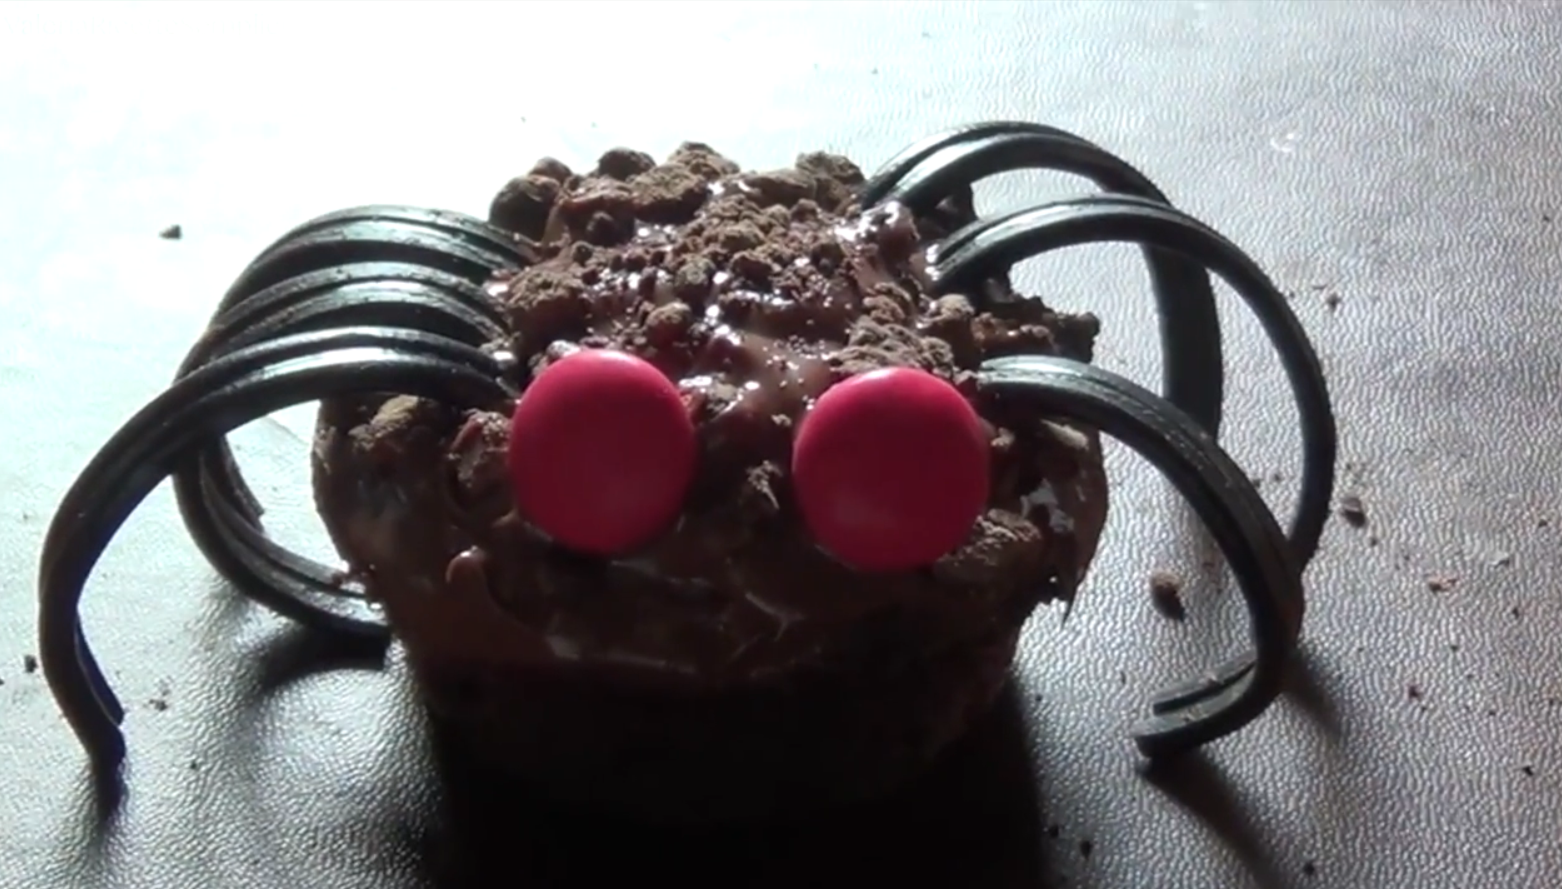 45.-Sweet recipes for the scariest night of Halloween Halloween spiders-1.png